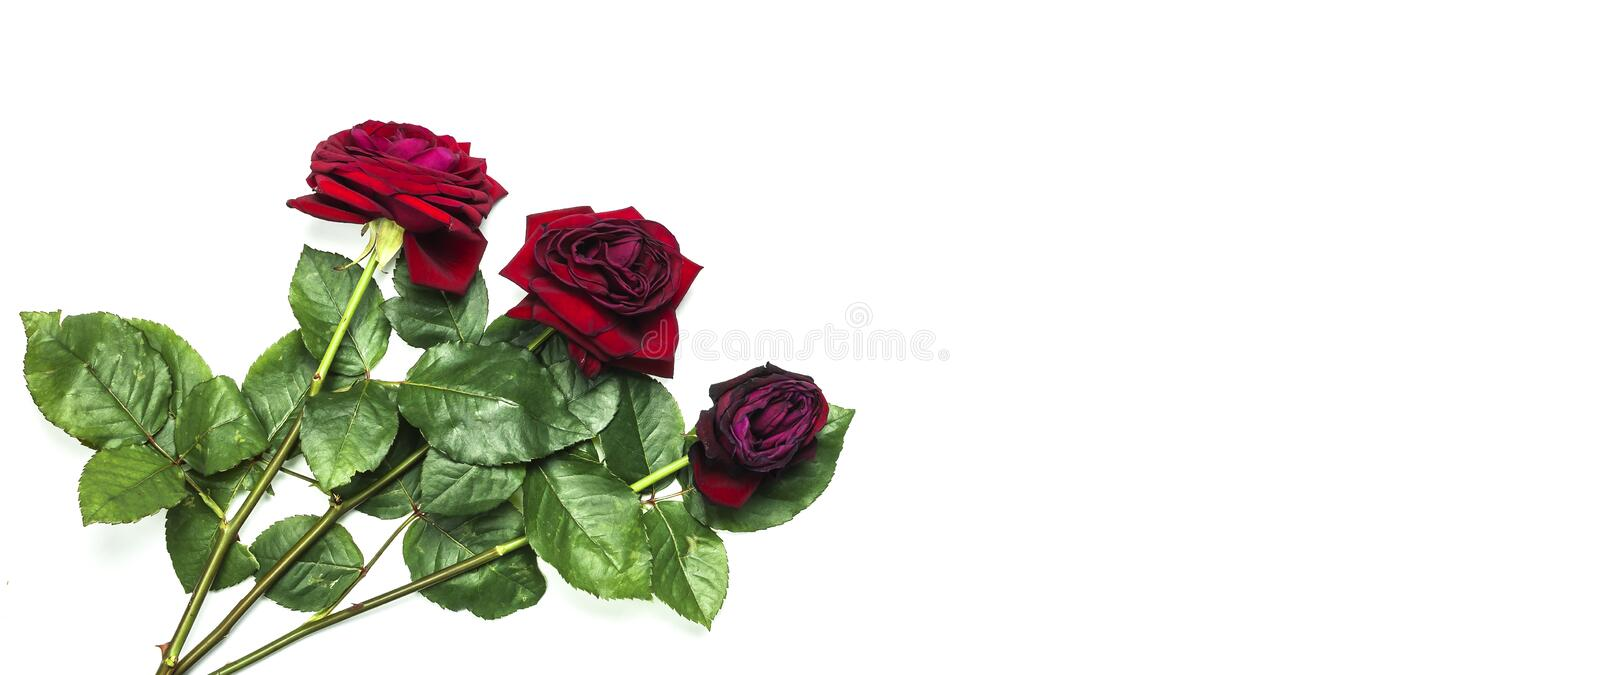 The stages of the life cycle of red rose from flowering to wilting on white isolated background top view. Three red roses royalty free stock photo